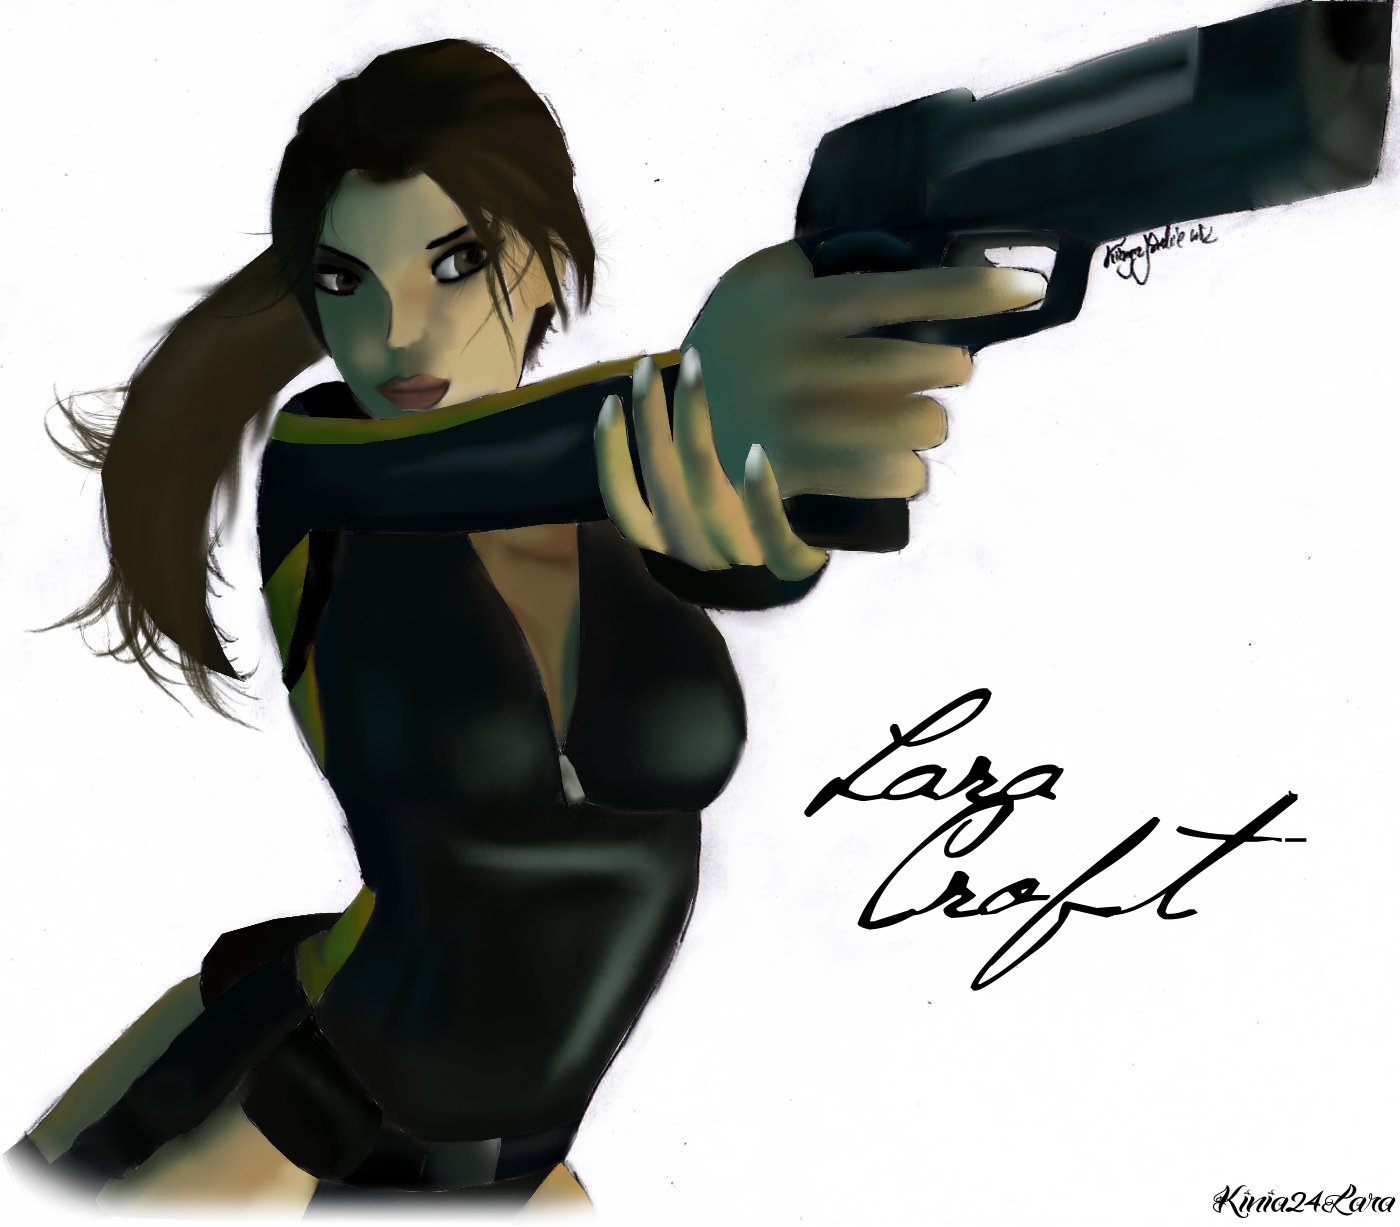 Tomb Rider Wallpaper: Lara Croft Tomb Raider....x2 By Kinia24Lara On DeviantArt